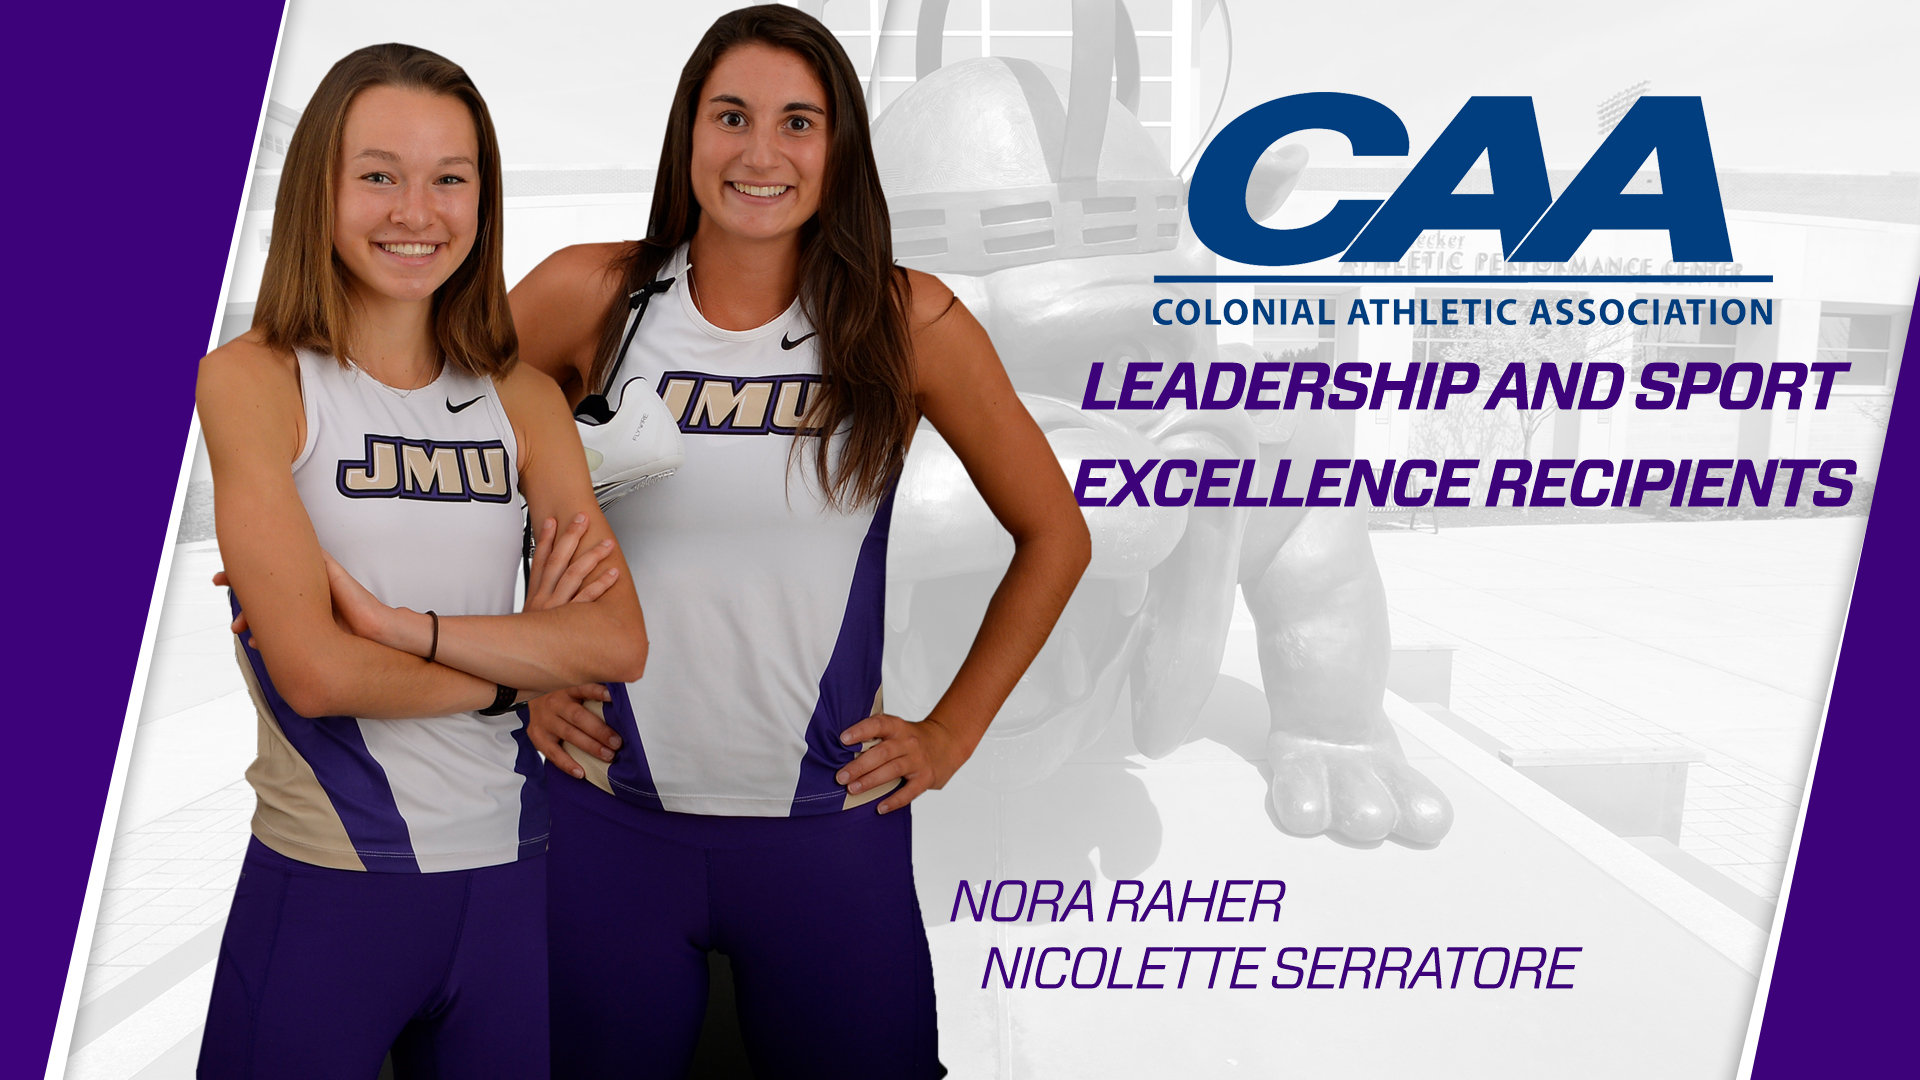 Women's Cross Country, Track & Field: Raher & Serratore Receive CAA Leadership and Sport Excellence Awards